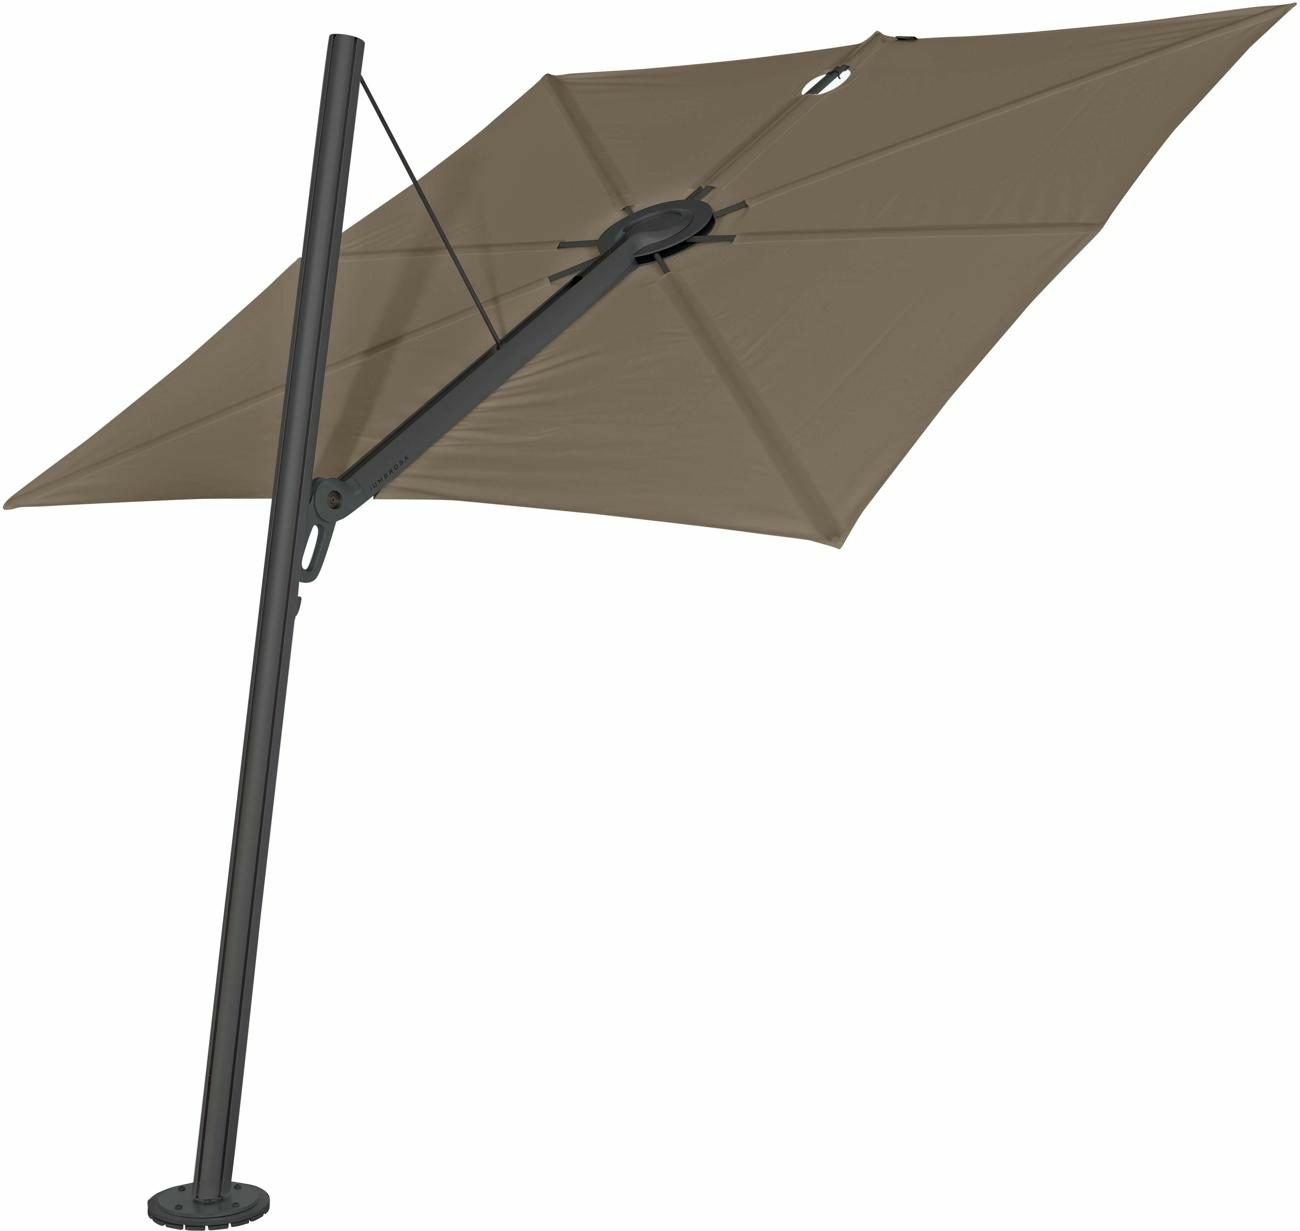 Spectra cantilever umbrella forward 80°